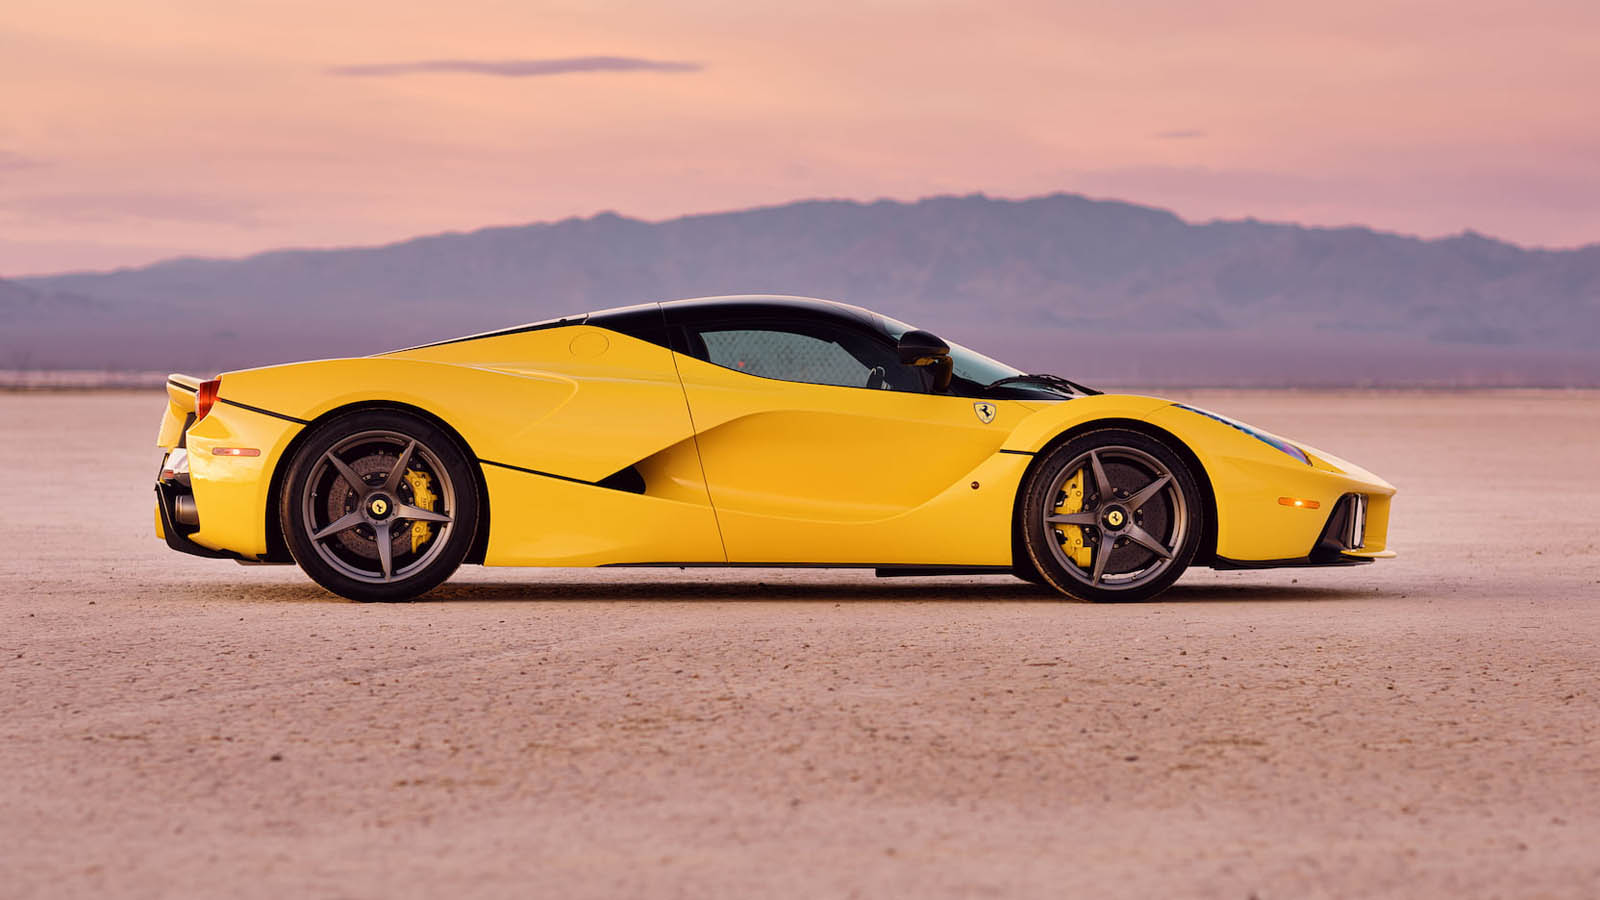 There S A Yellow Laferrari Up For Grabs With Only 317